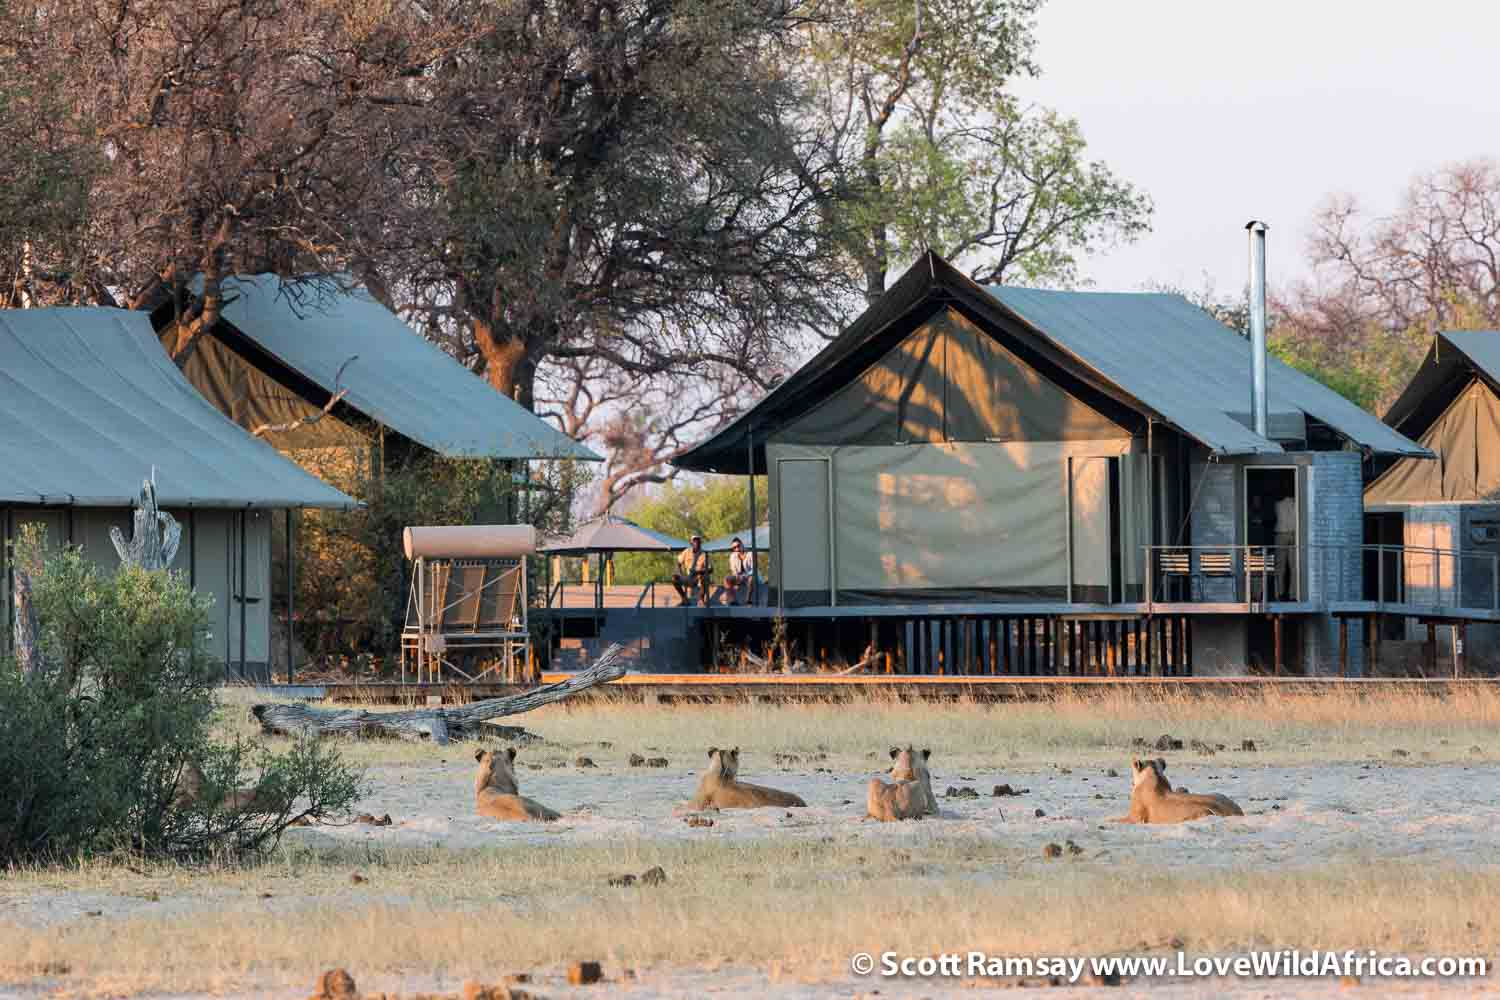 There are no fences around any of the Wilderness Safaris' camps in Hwange, and lions have right of way! Careful where you walk after sunset...